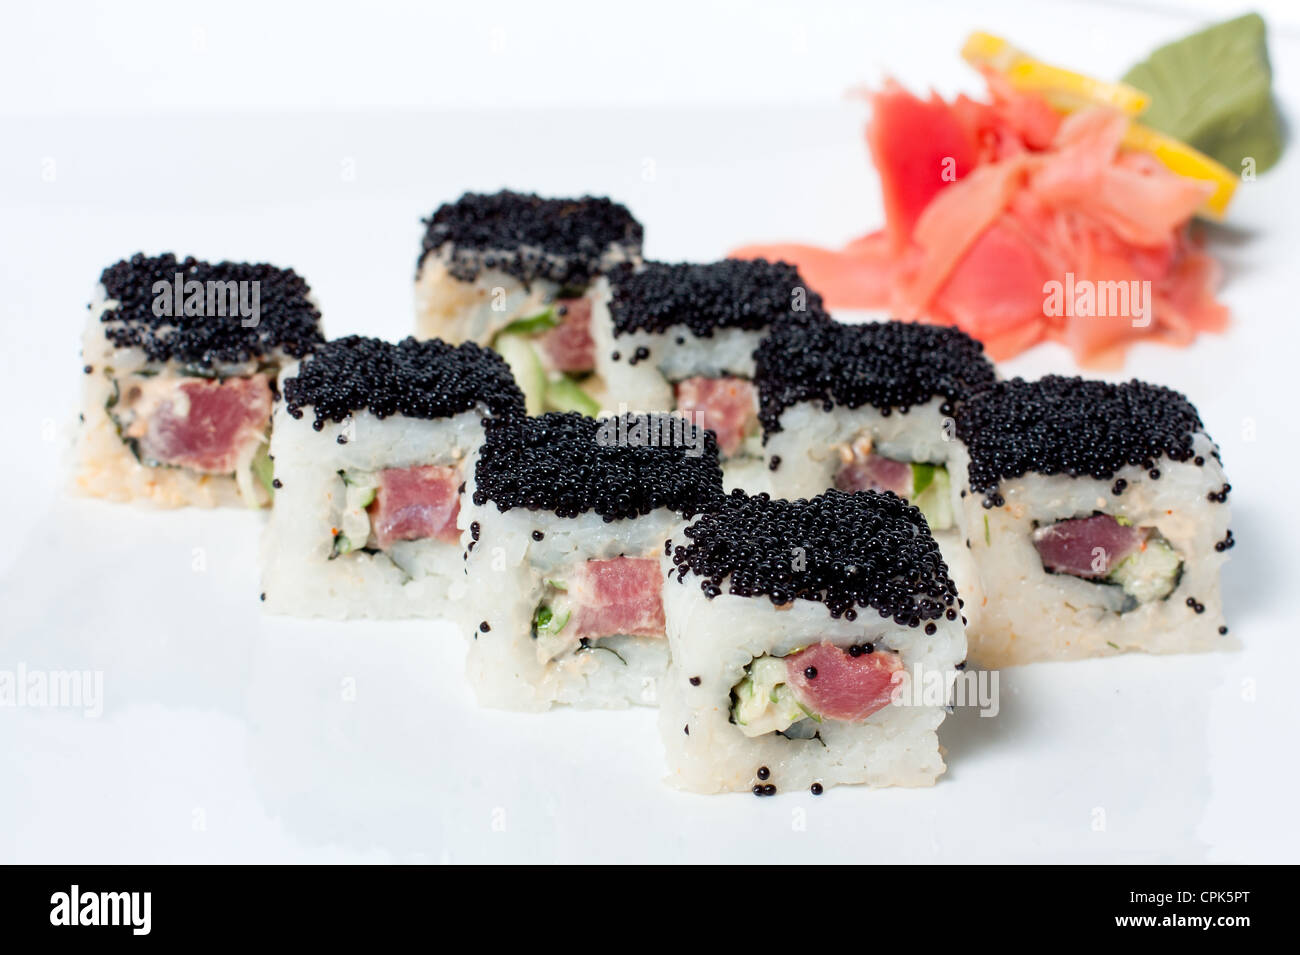 Sushi Roll with black caviar. - Stock Image